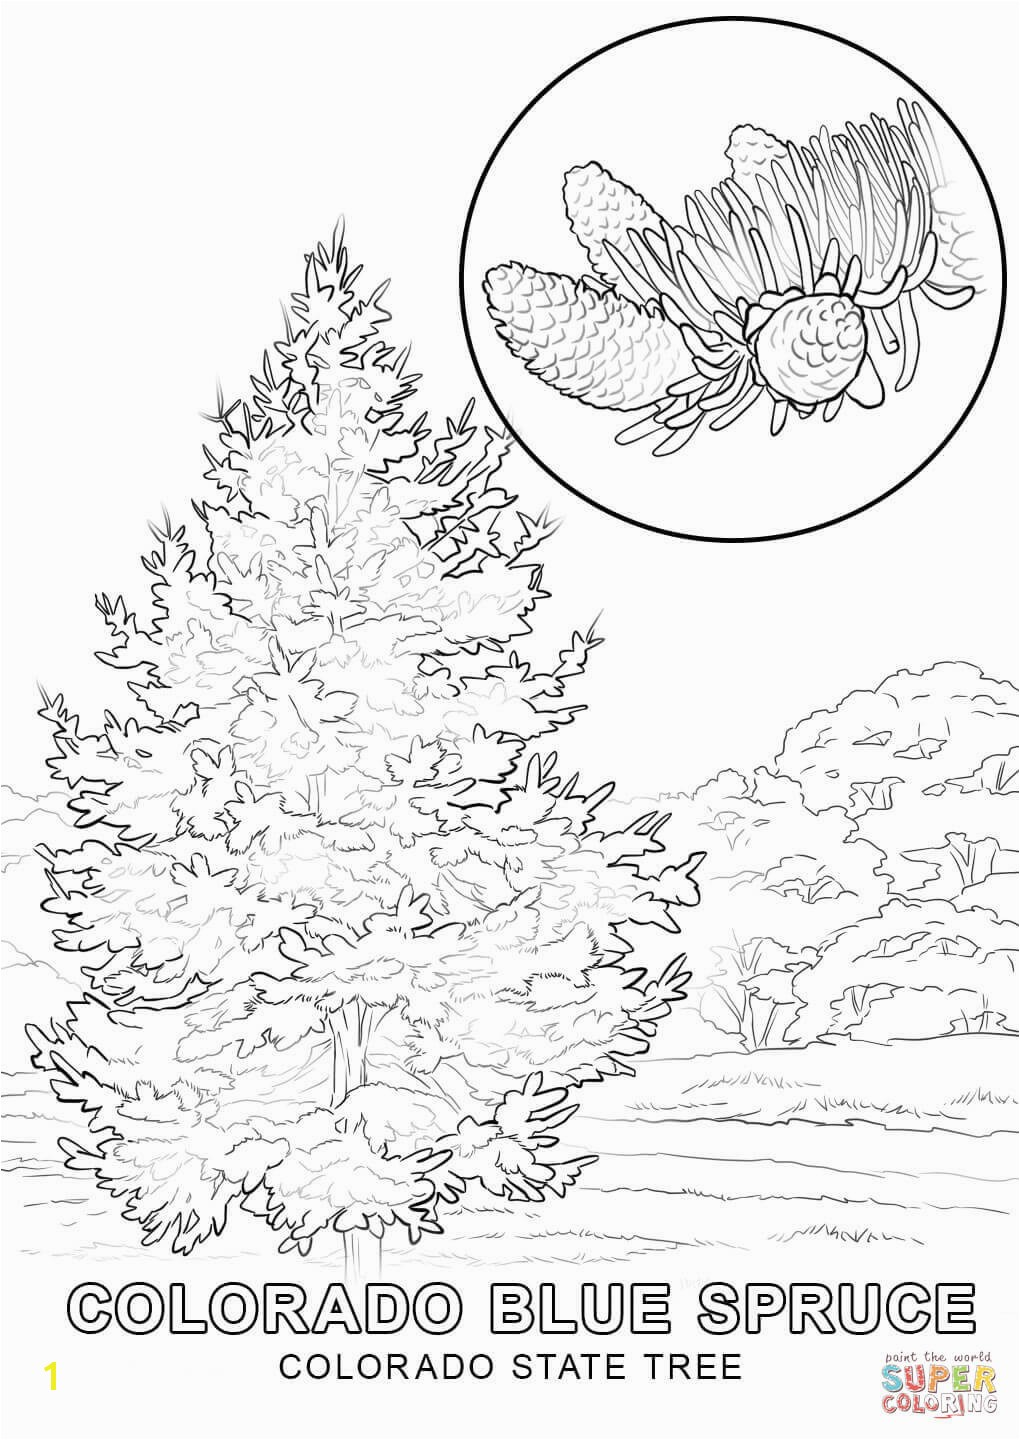 Delaware State Flower Coloring Page States Coloring Pages Colorado State Tree Page Free Printable Best